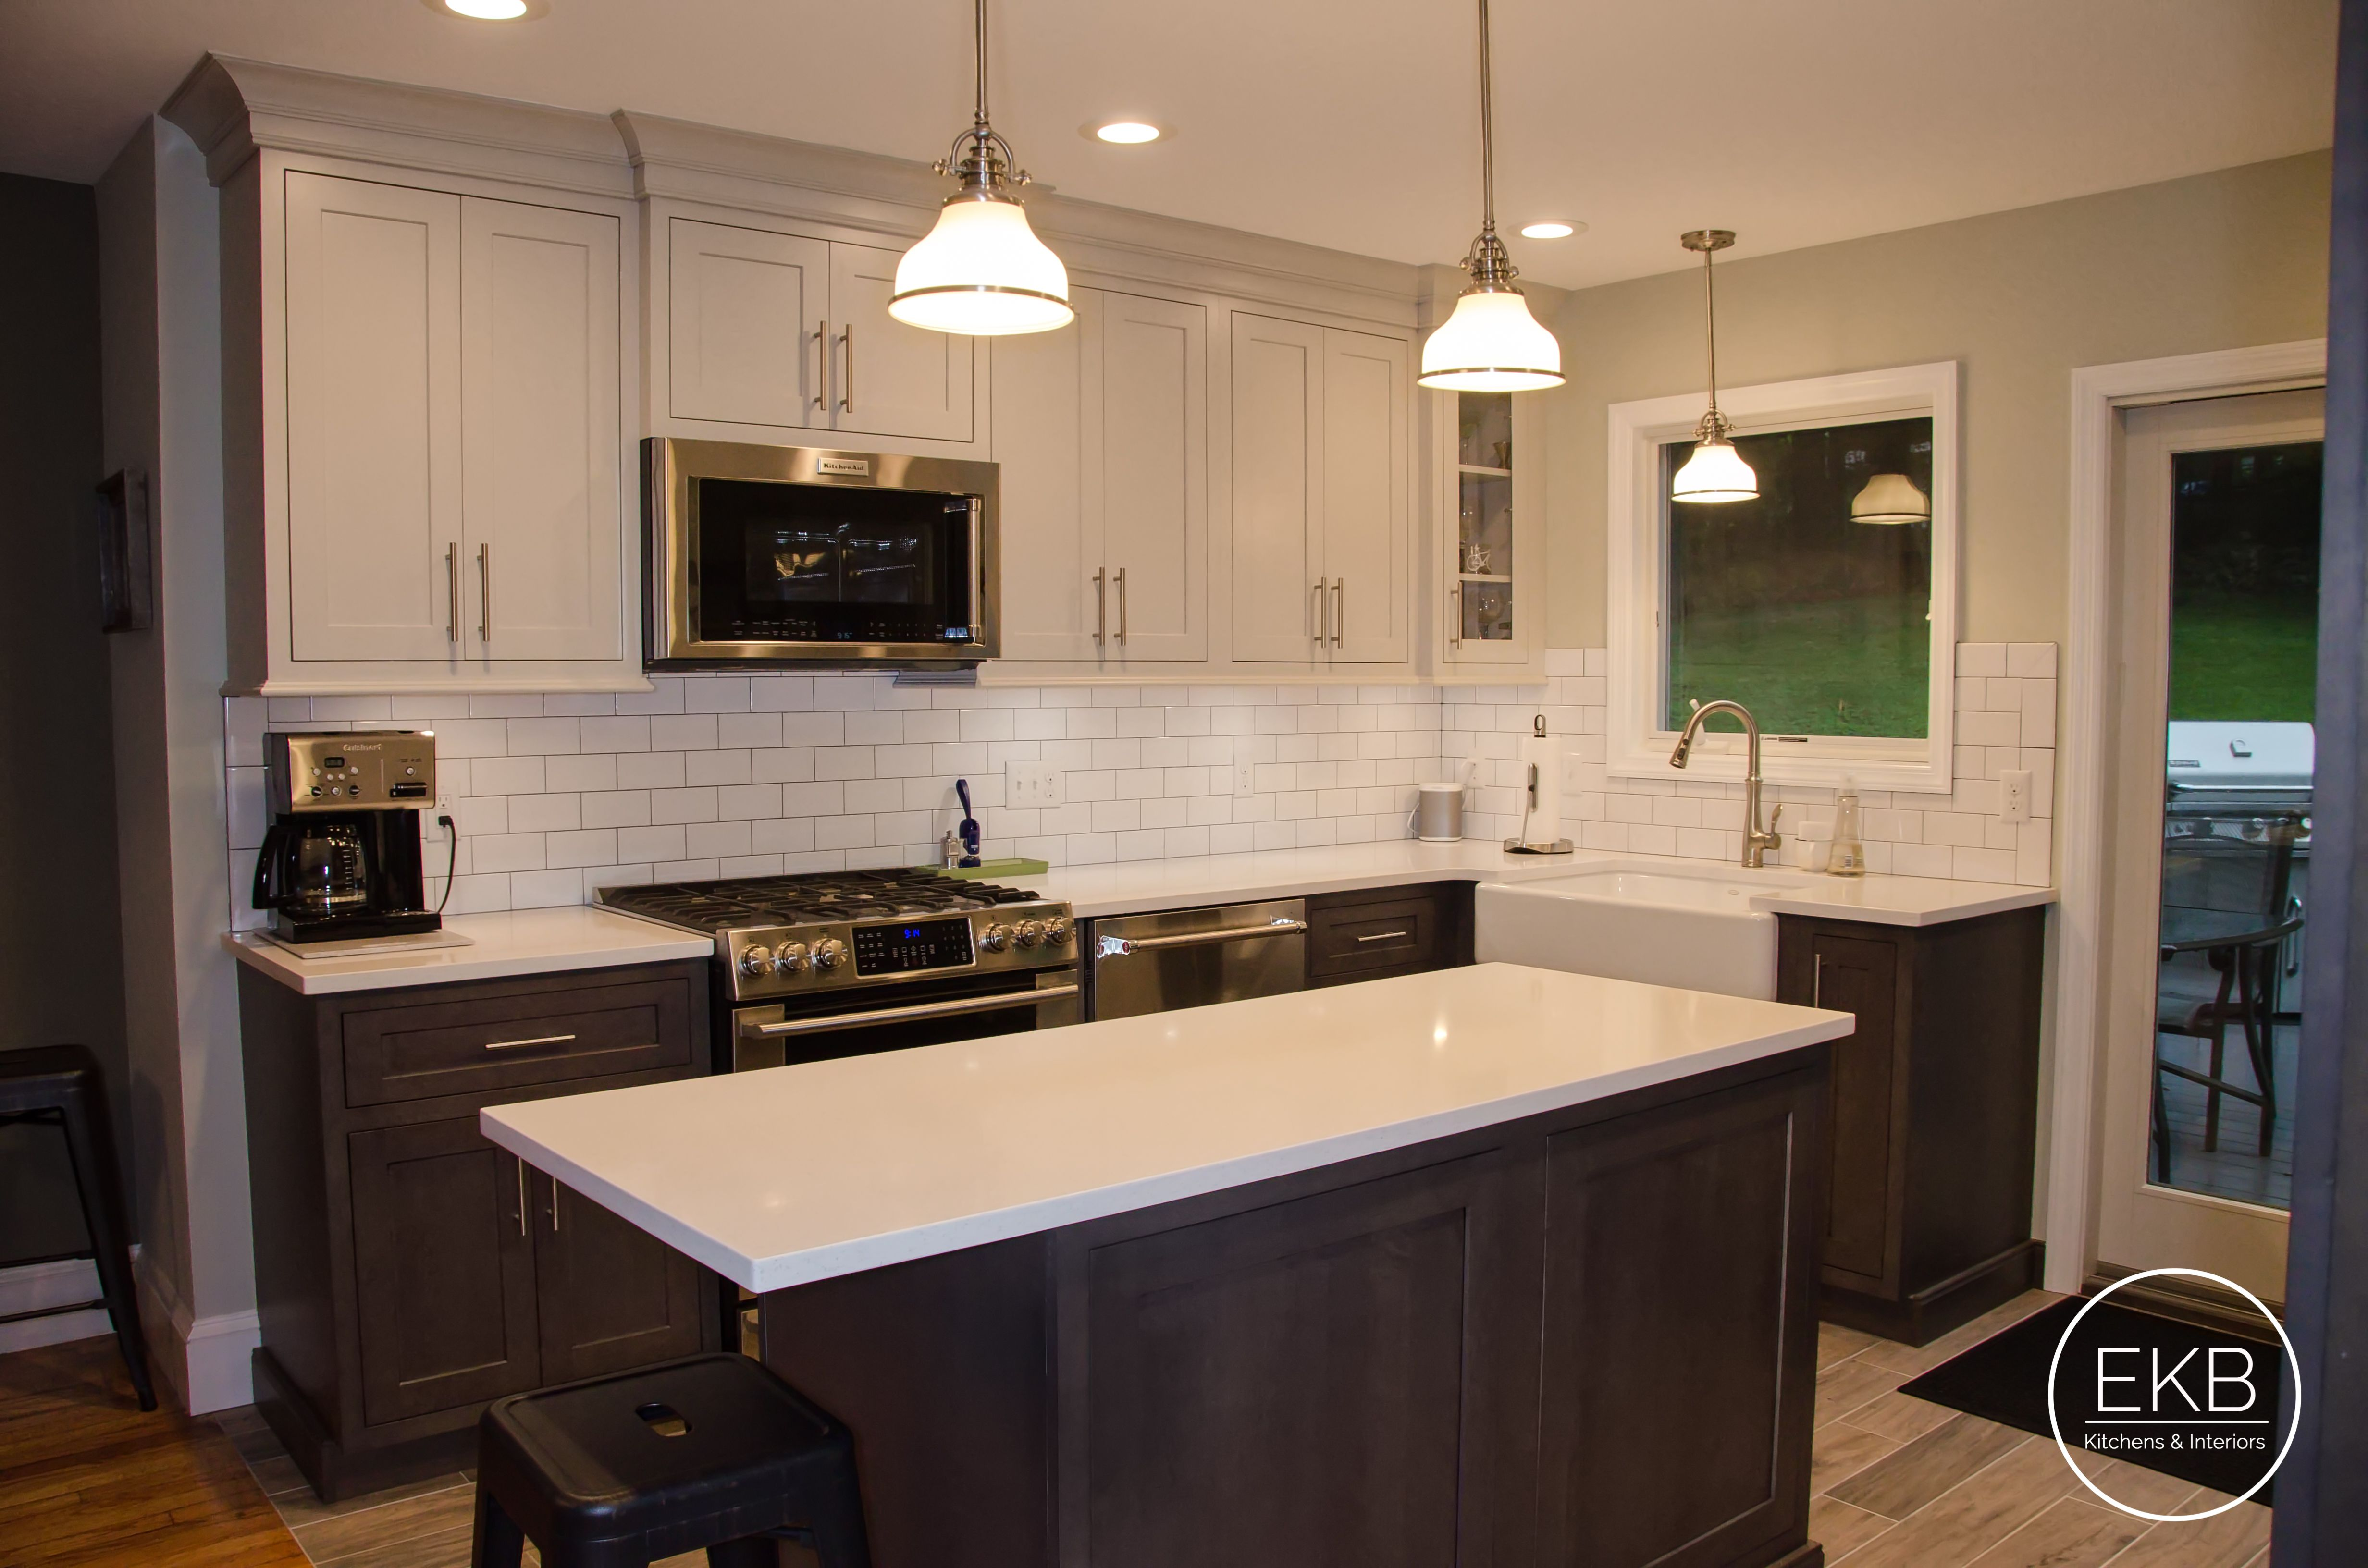 shiloh inset maple cabinets in repose gray and silas with rh pinterest com